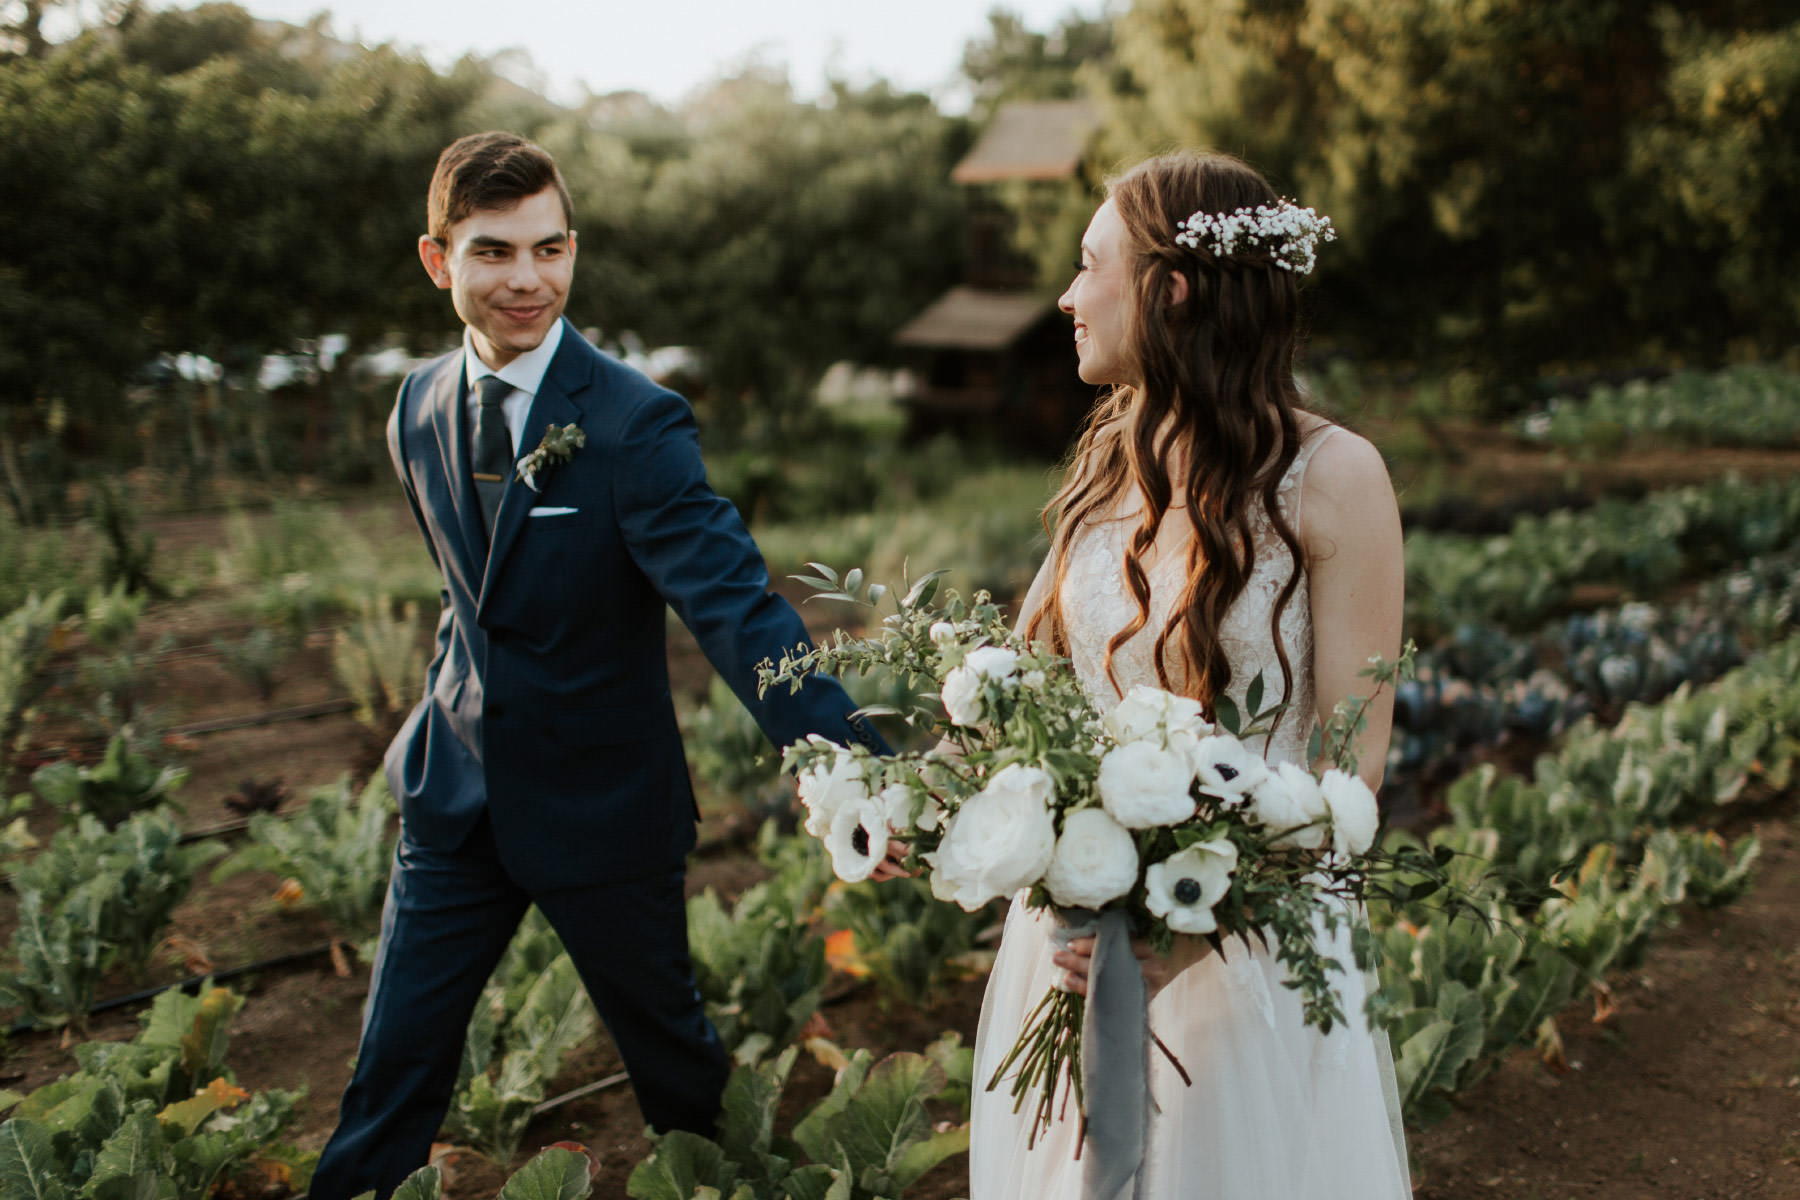 Bride and groom walking through organic garden